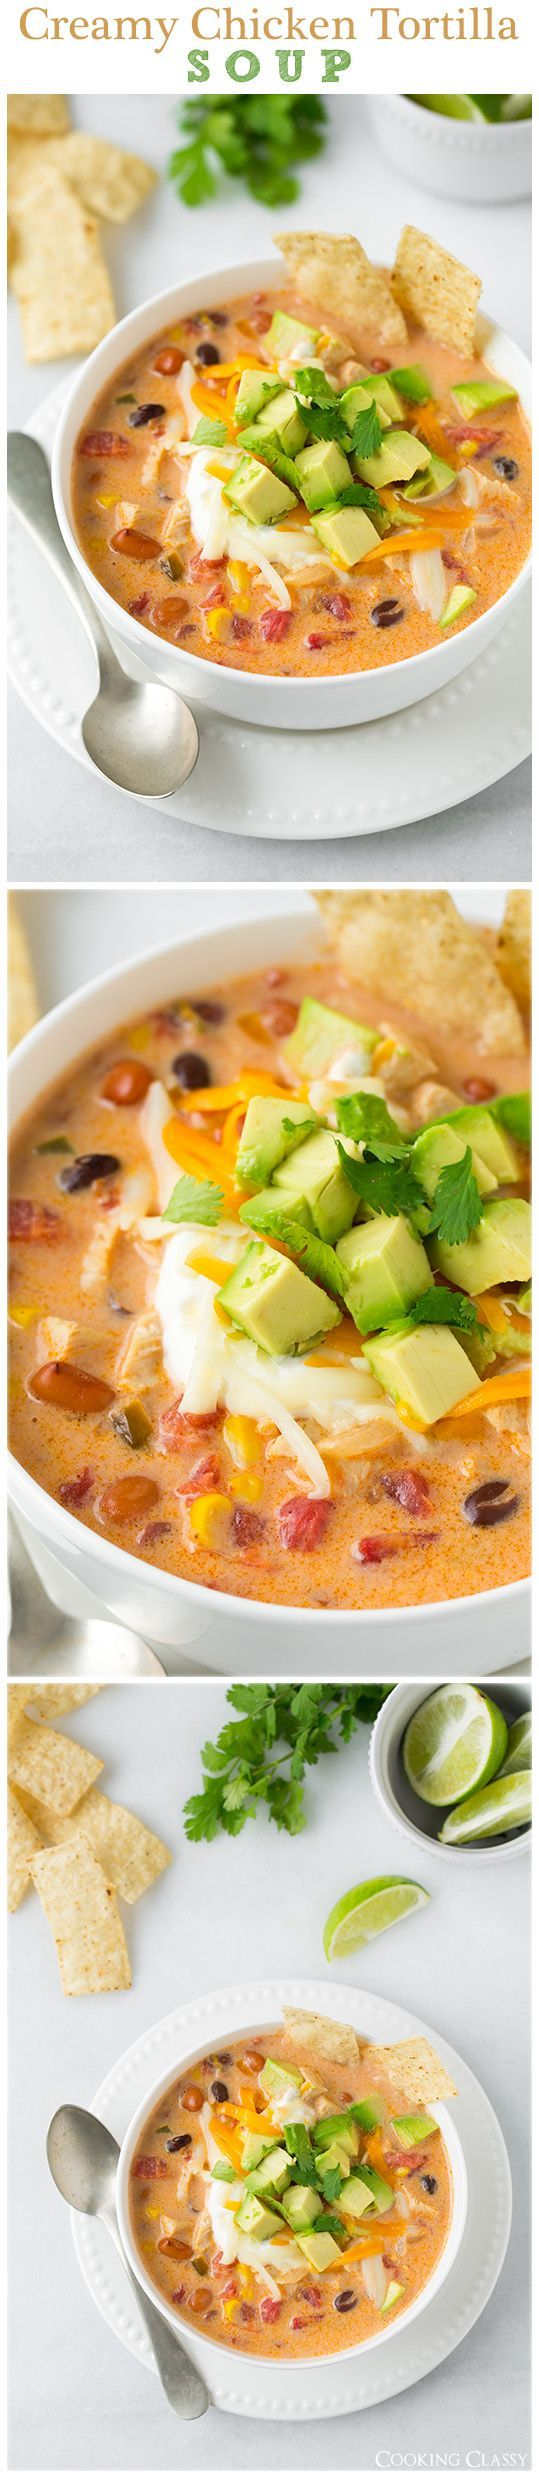 Creamy Chicken Tortilla Soup. A hearty, warming and comforting soup made with juicy chicken, vegetables and loaded with delicious toppings.